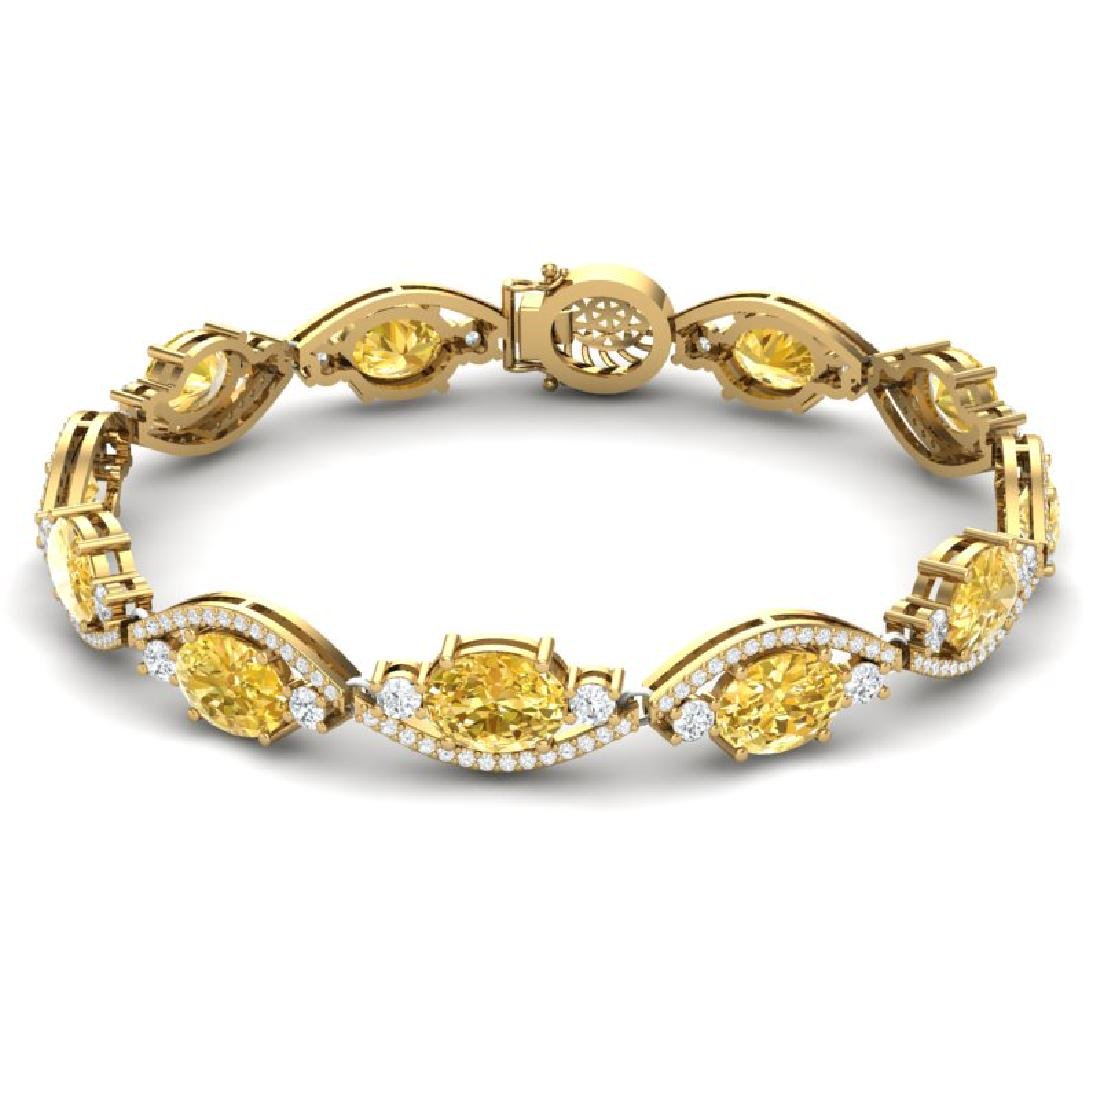 18.3 CTW Royalty Canary Citrine & VS Diamond Bracelet - 3